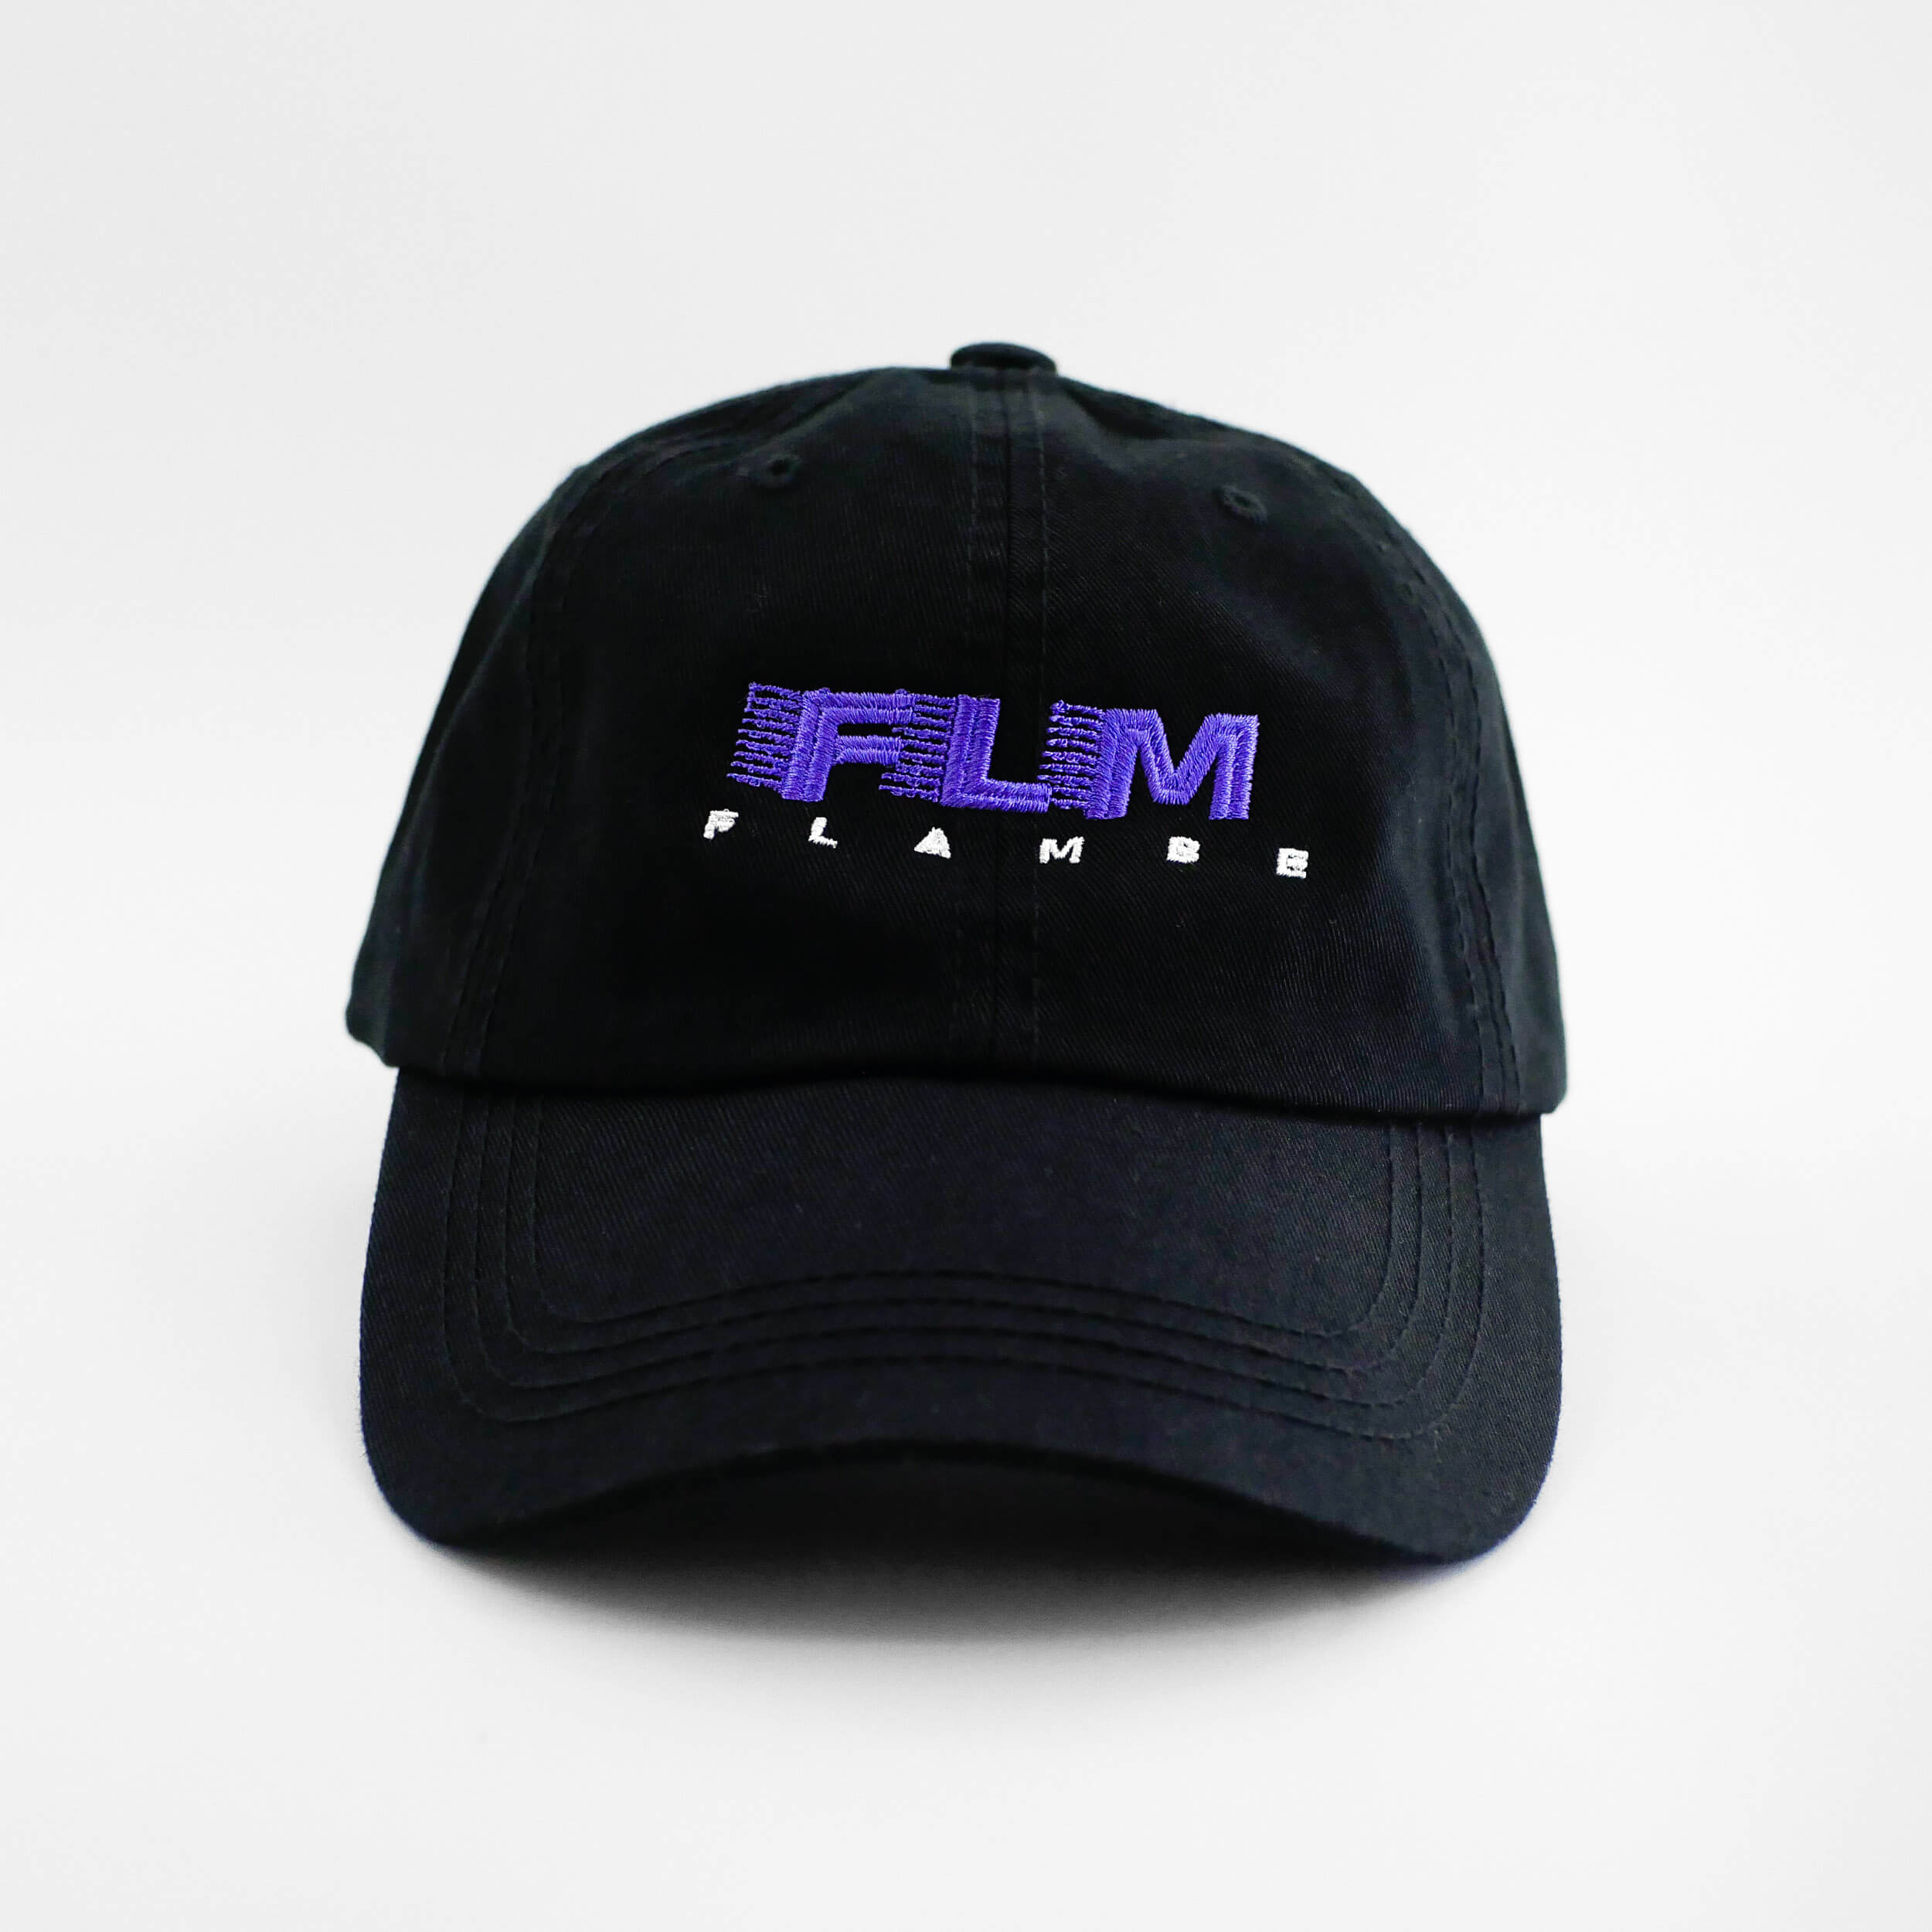 Front view of the embroidered 'FLAMBE' black dad hat from PHOSIS Clothing